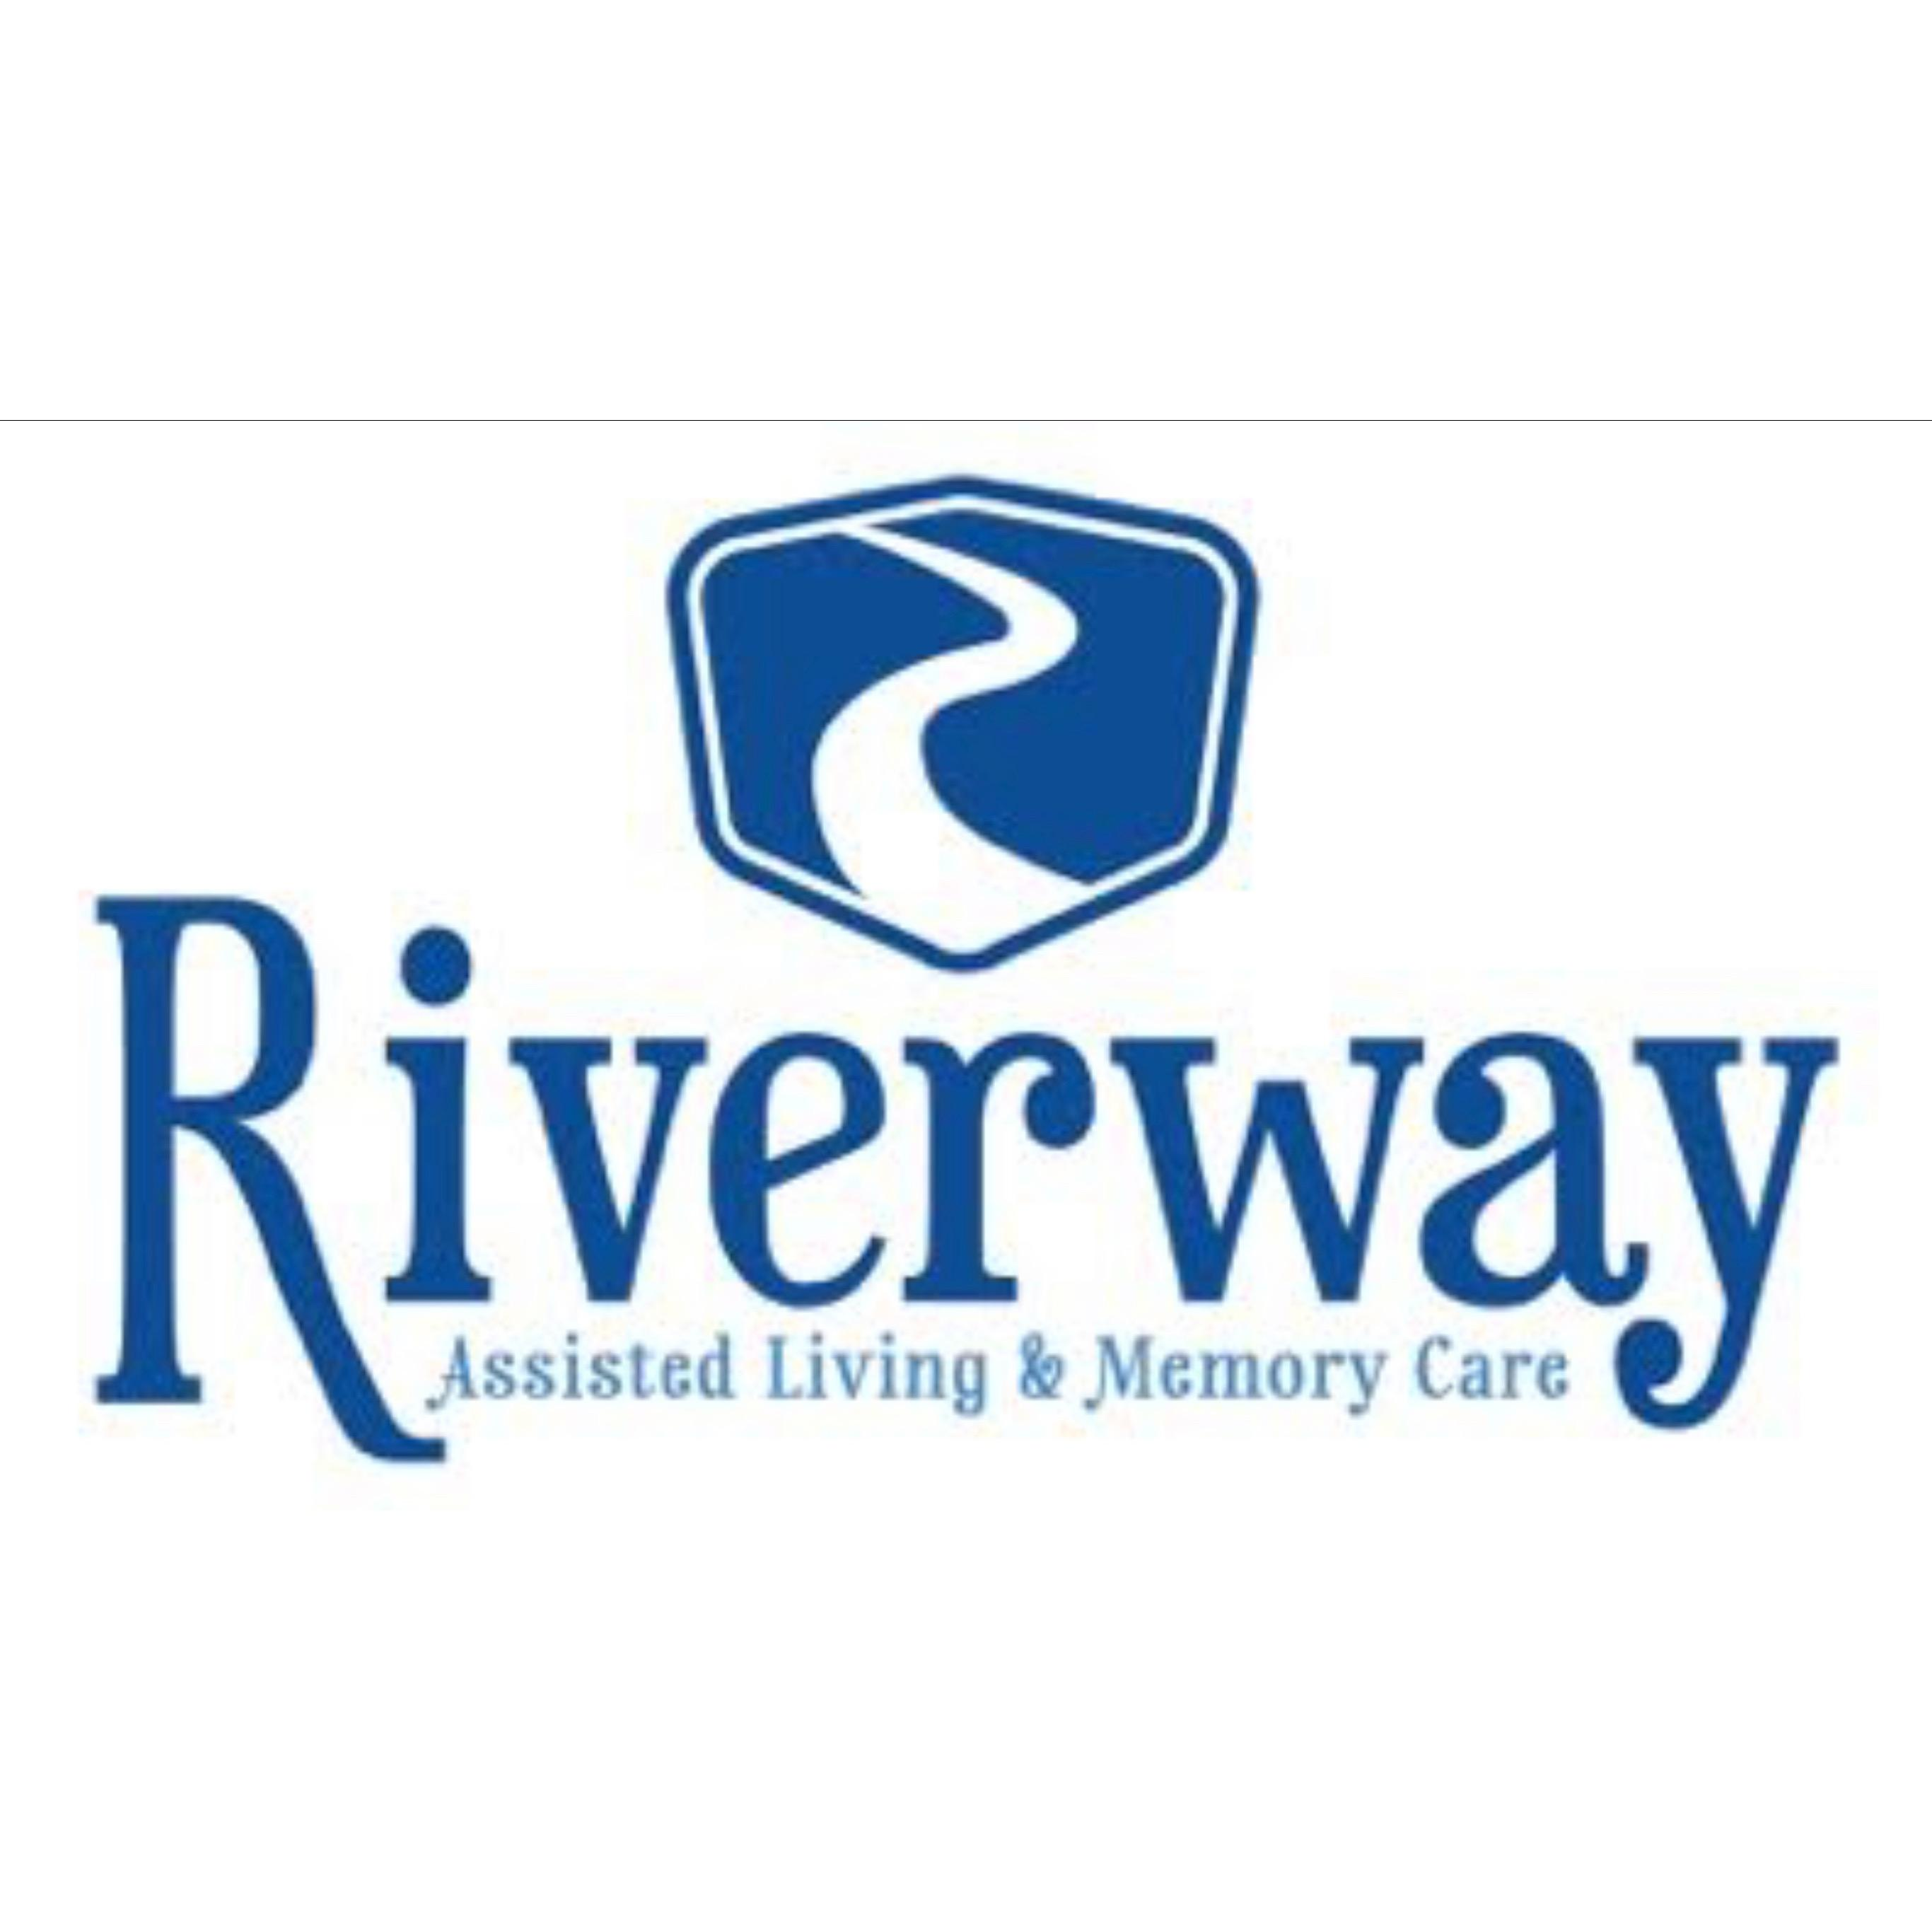 Riverway Assisted Living and Memory Care